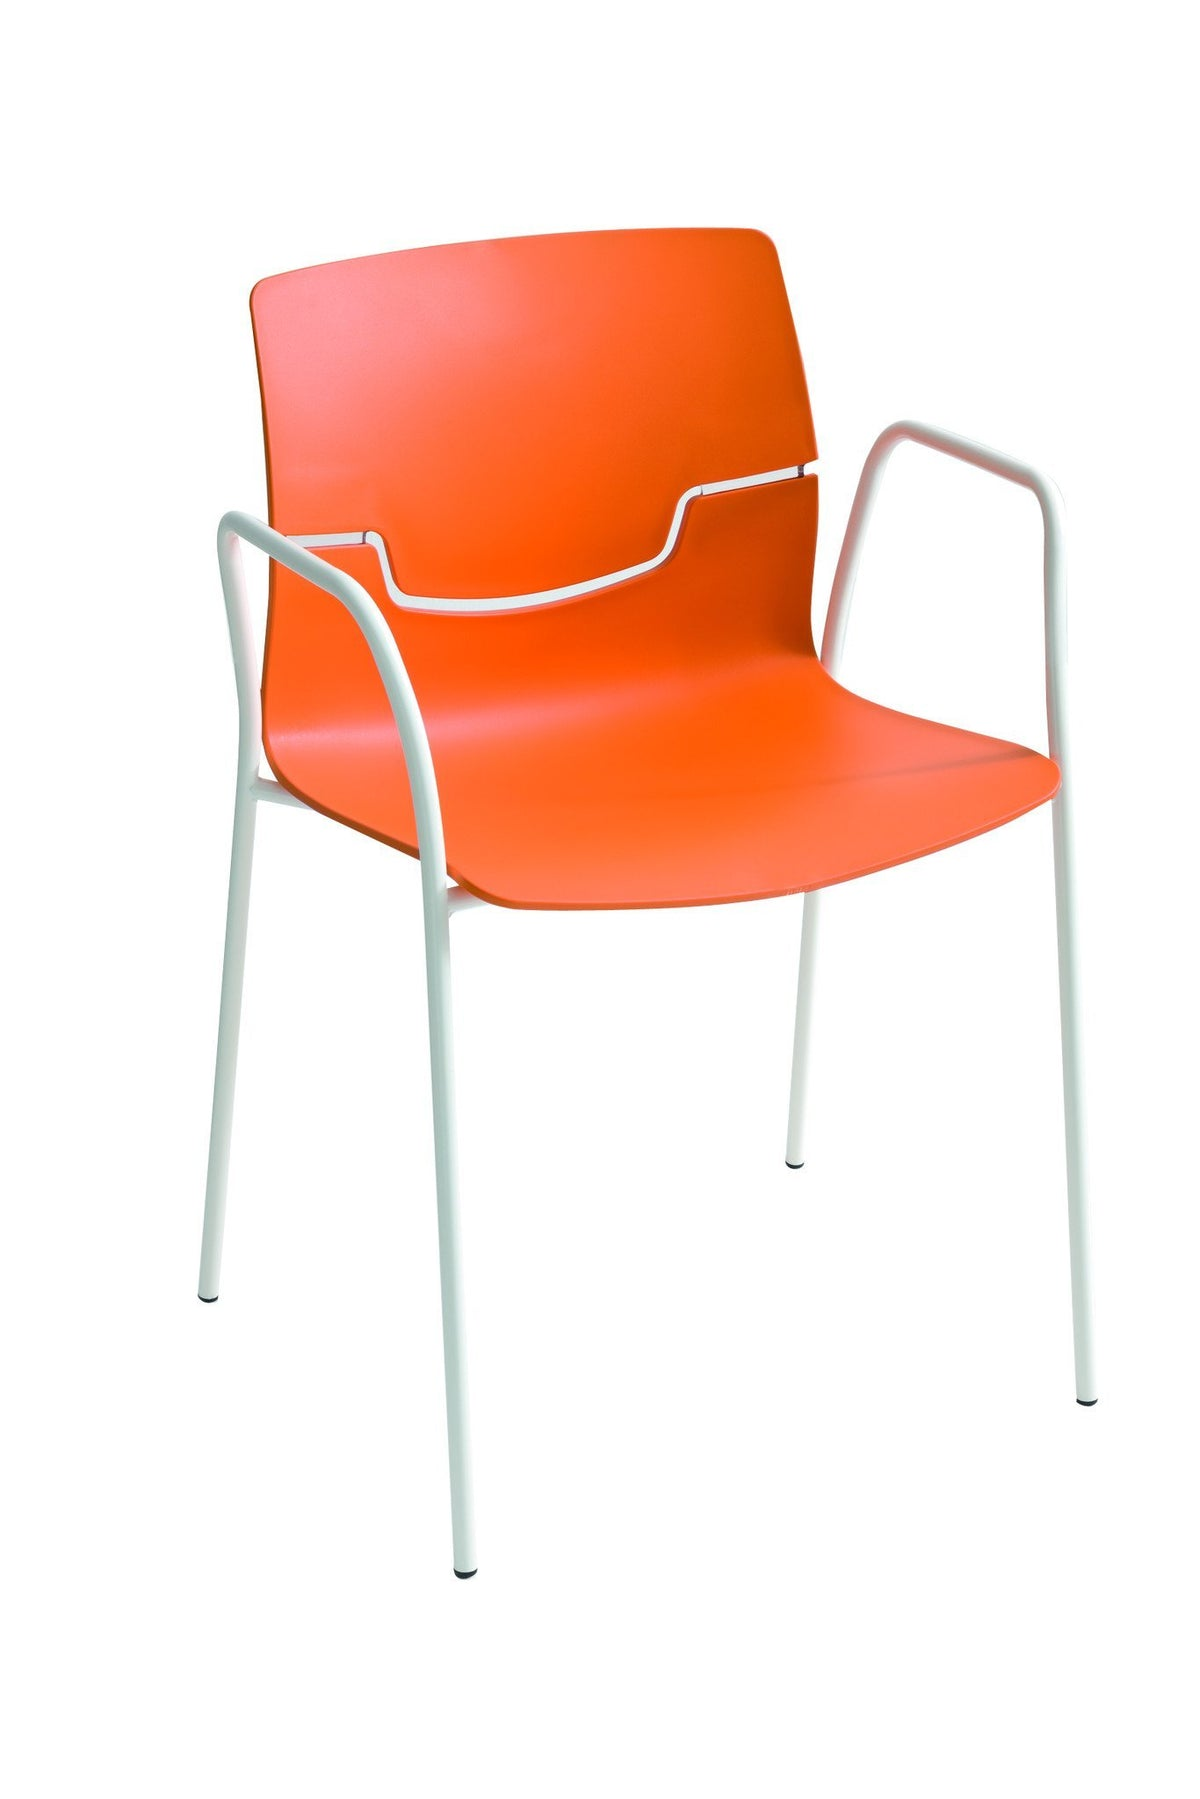 Slot Armchair c/w Metal Legs-Gaber-Contract Furniture Store